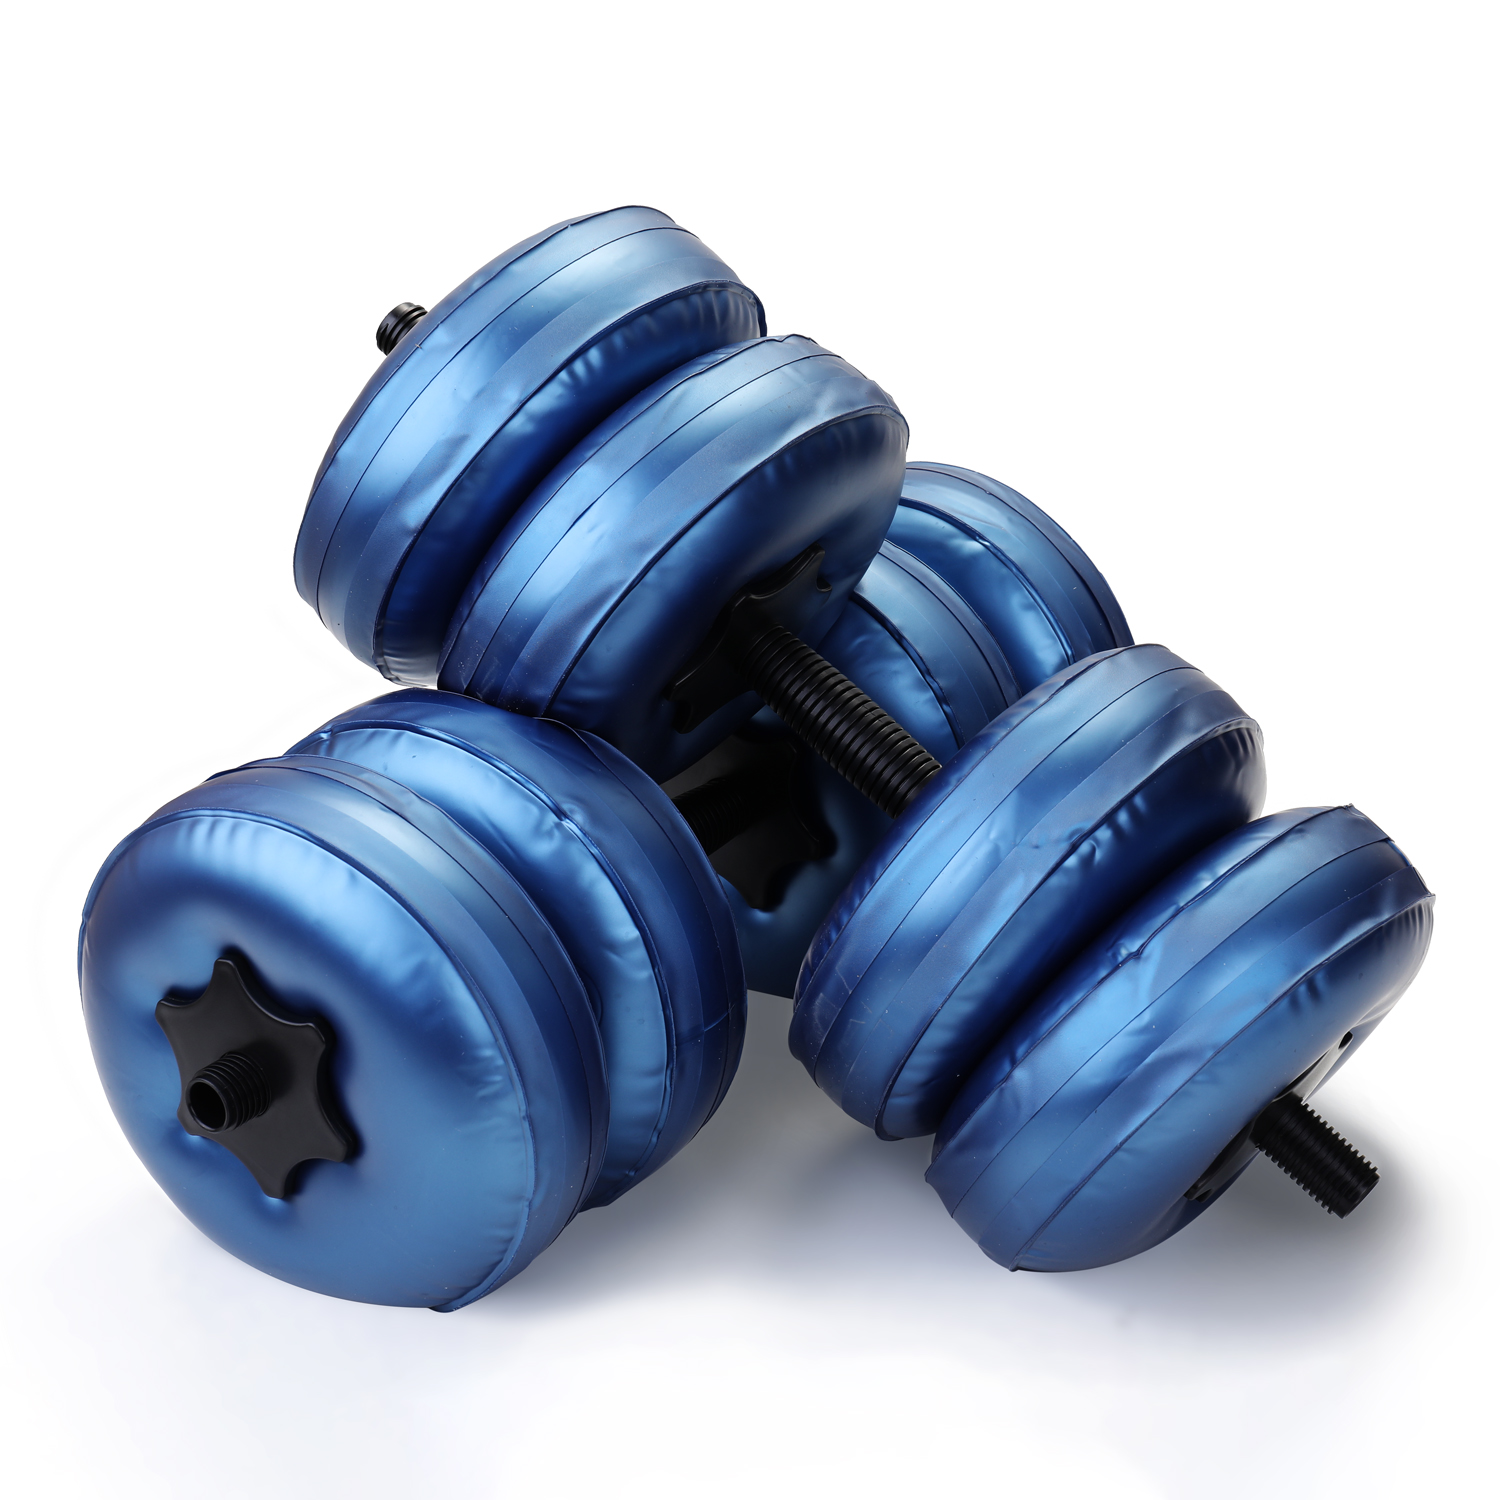 Adjustable Dumbbell Set Water-filled Dumbbell Heavey Weights Workout Exercise Fitness Equipment For Gym Home Bodybuilding